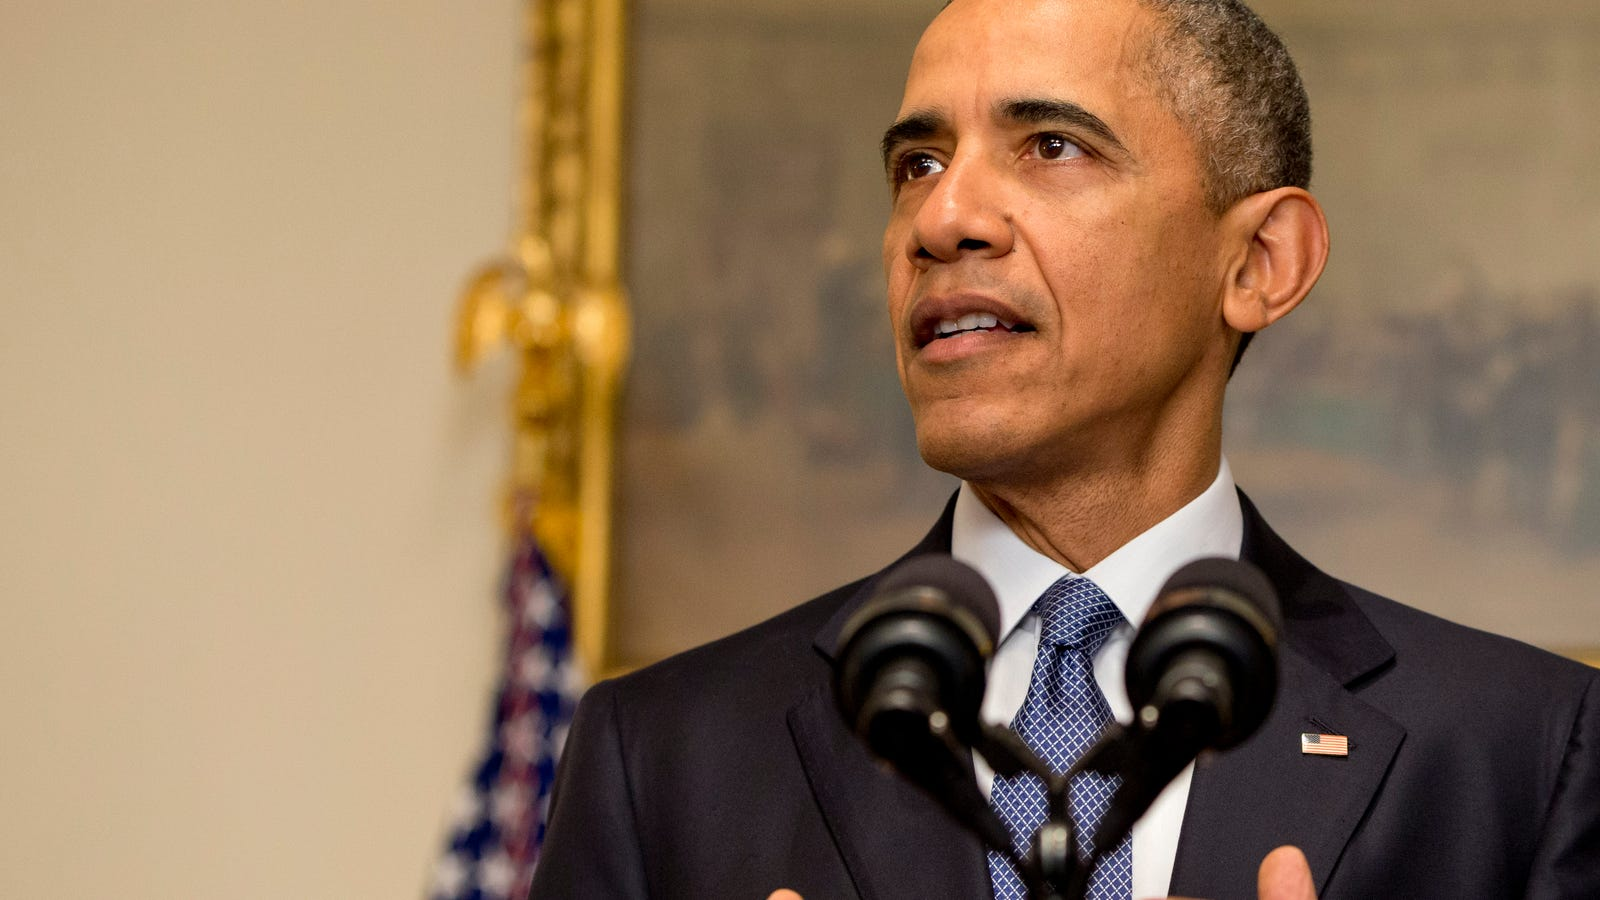 Obama Pledges To Double Spending On Renewable Energy Research By 2020